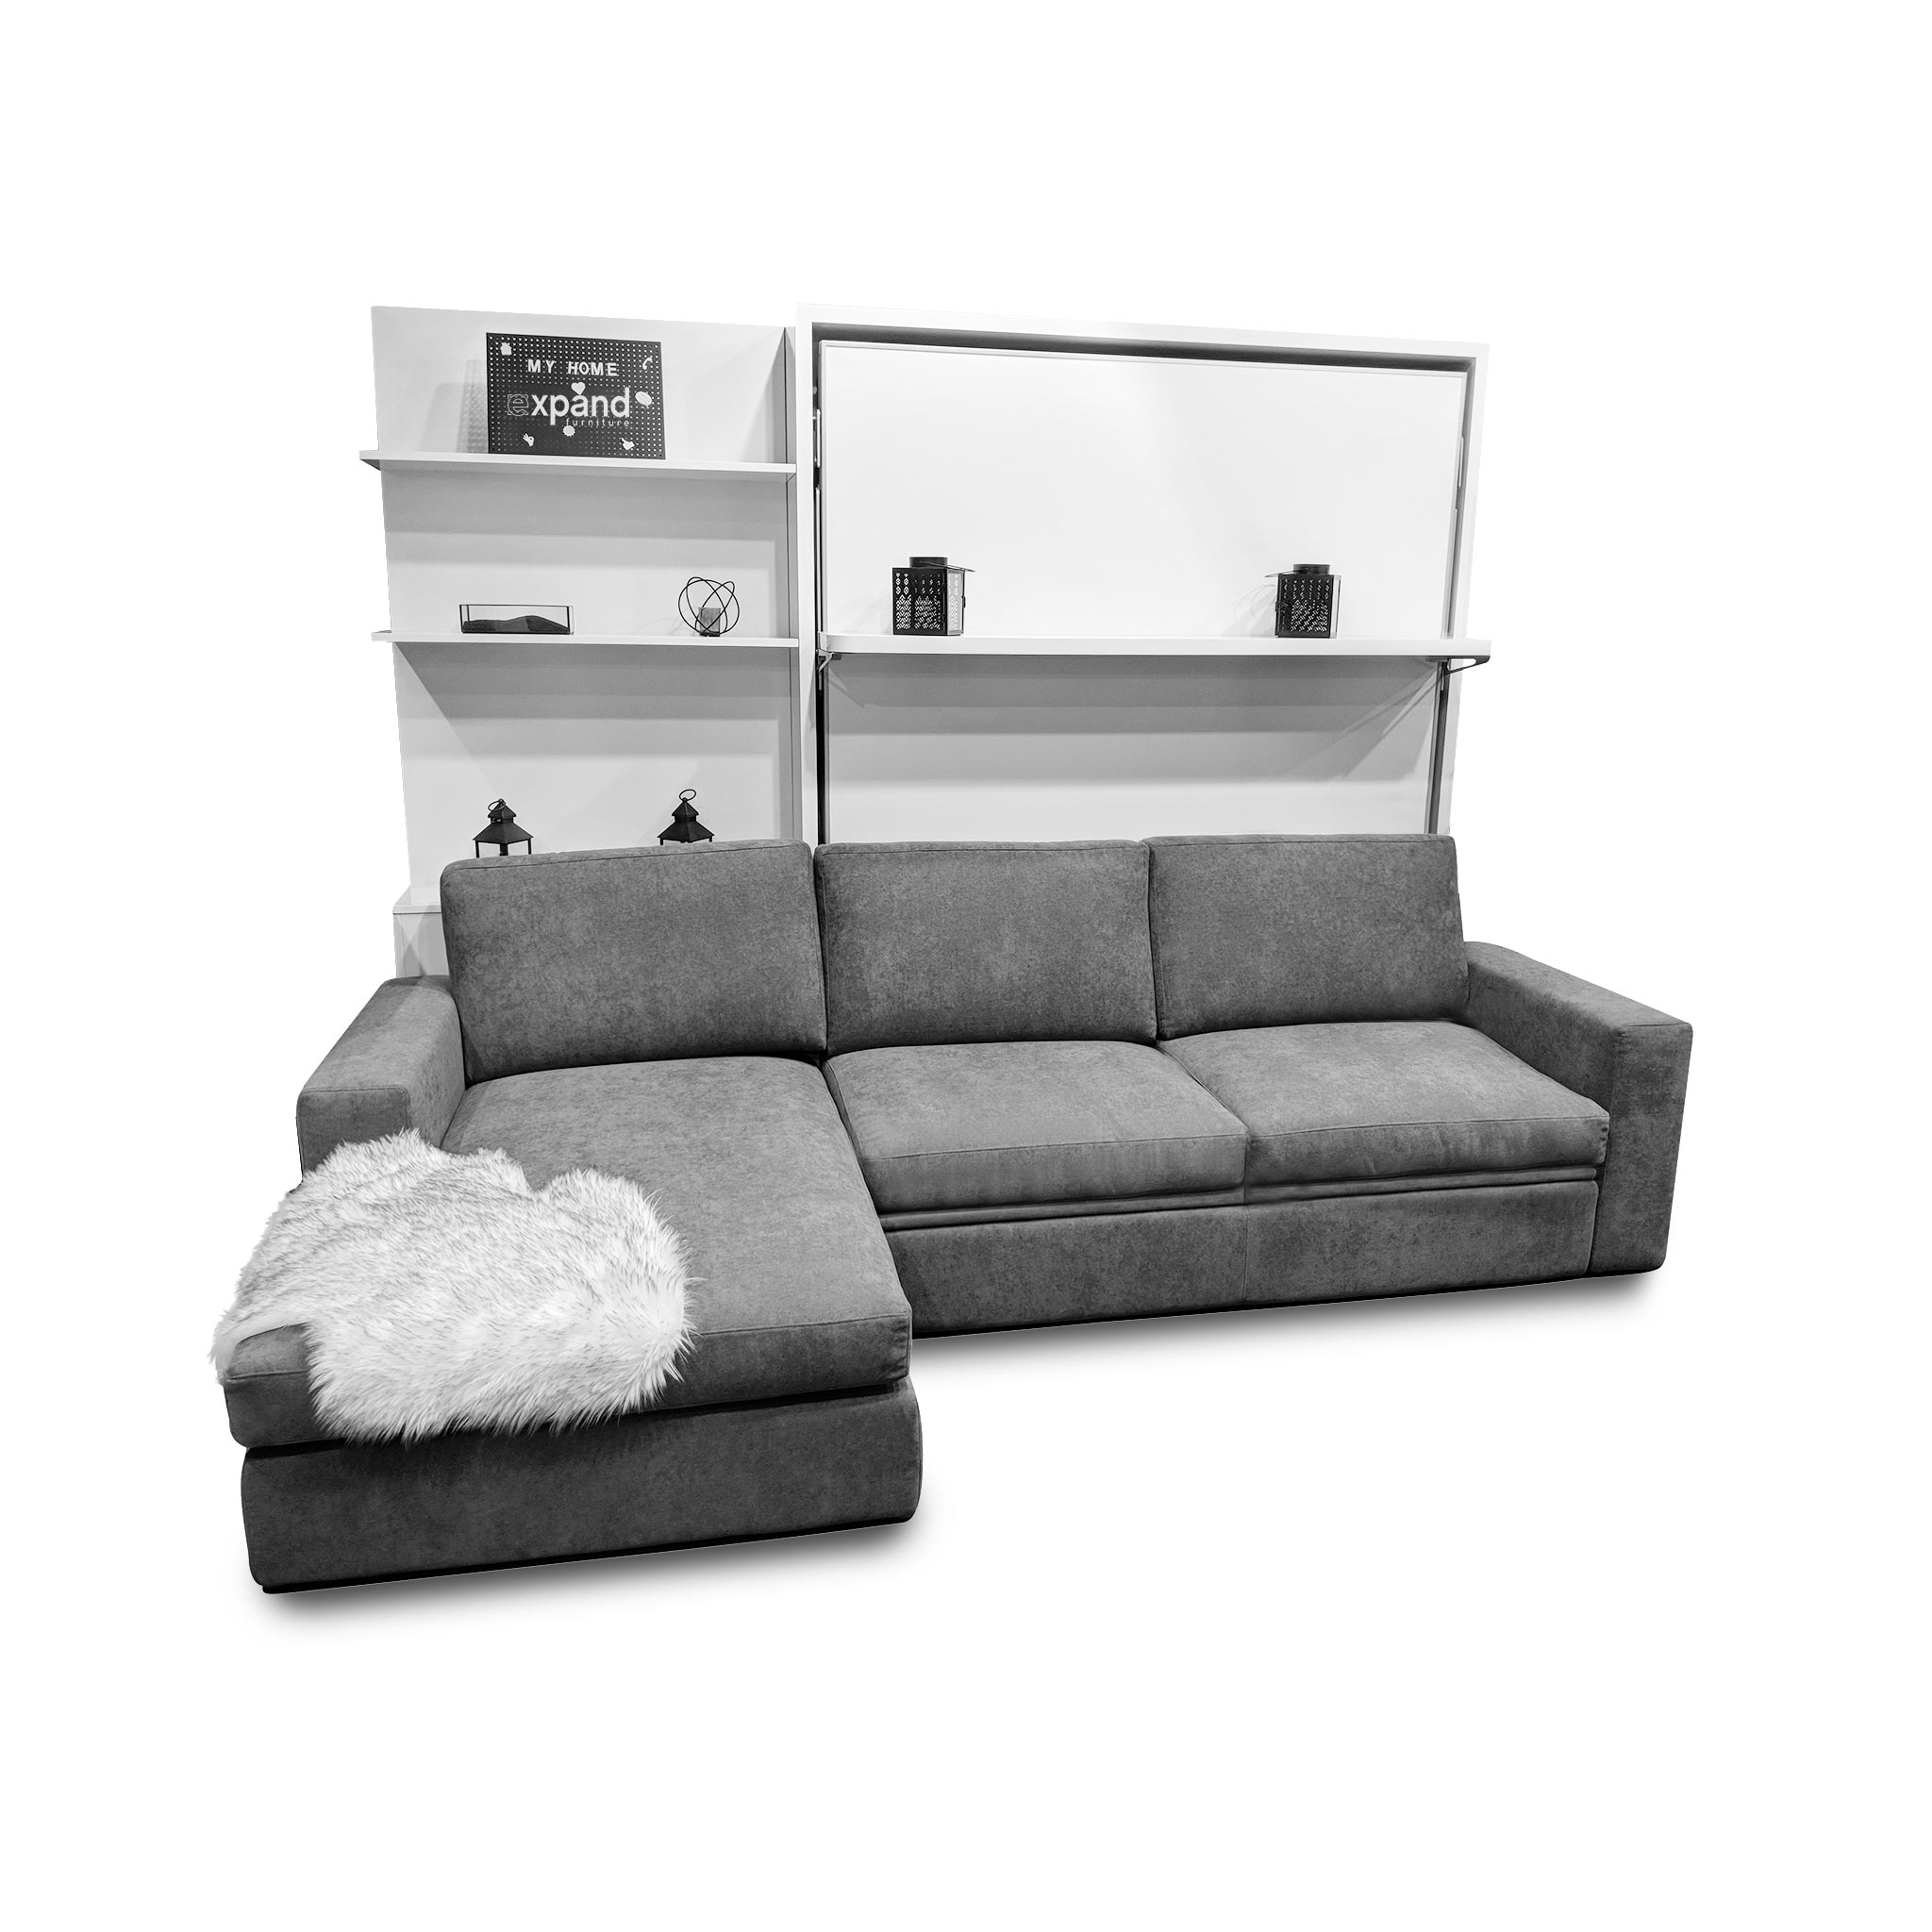 Stupendous Compatto Shelf Wall Bed Over Sectional Sofa Evergreenethics Interior Chair Design Evergreenethicsorg